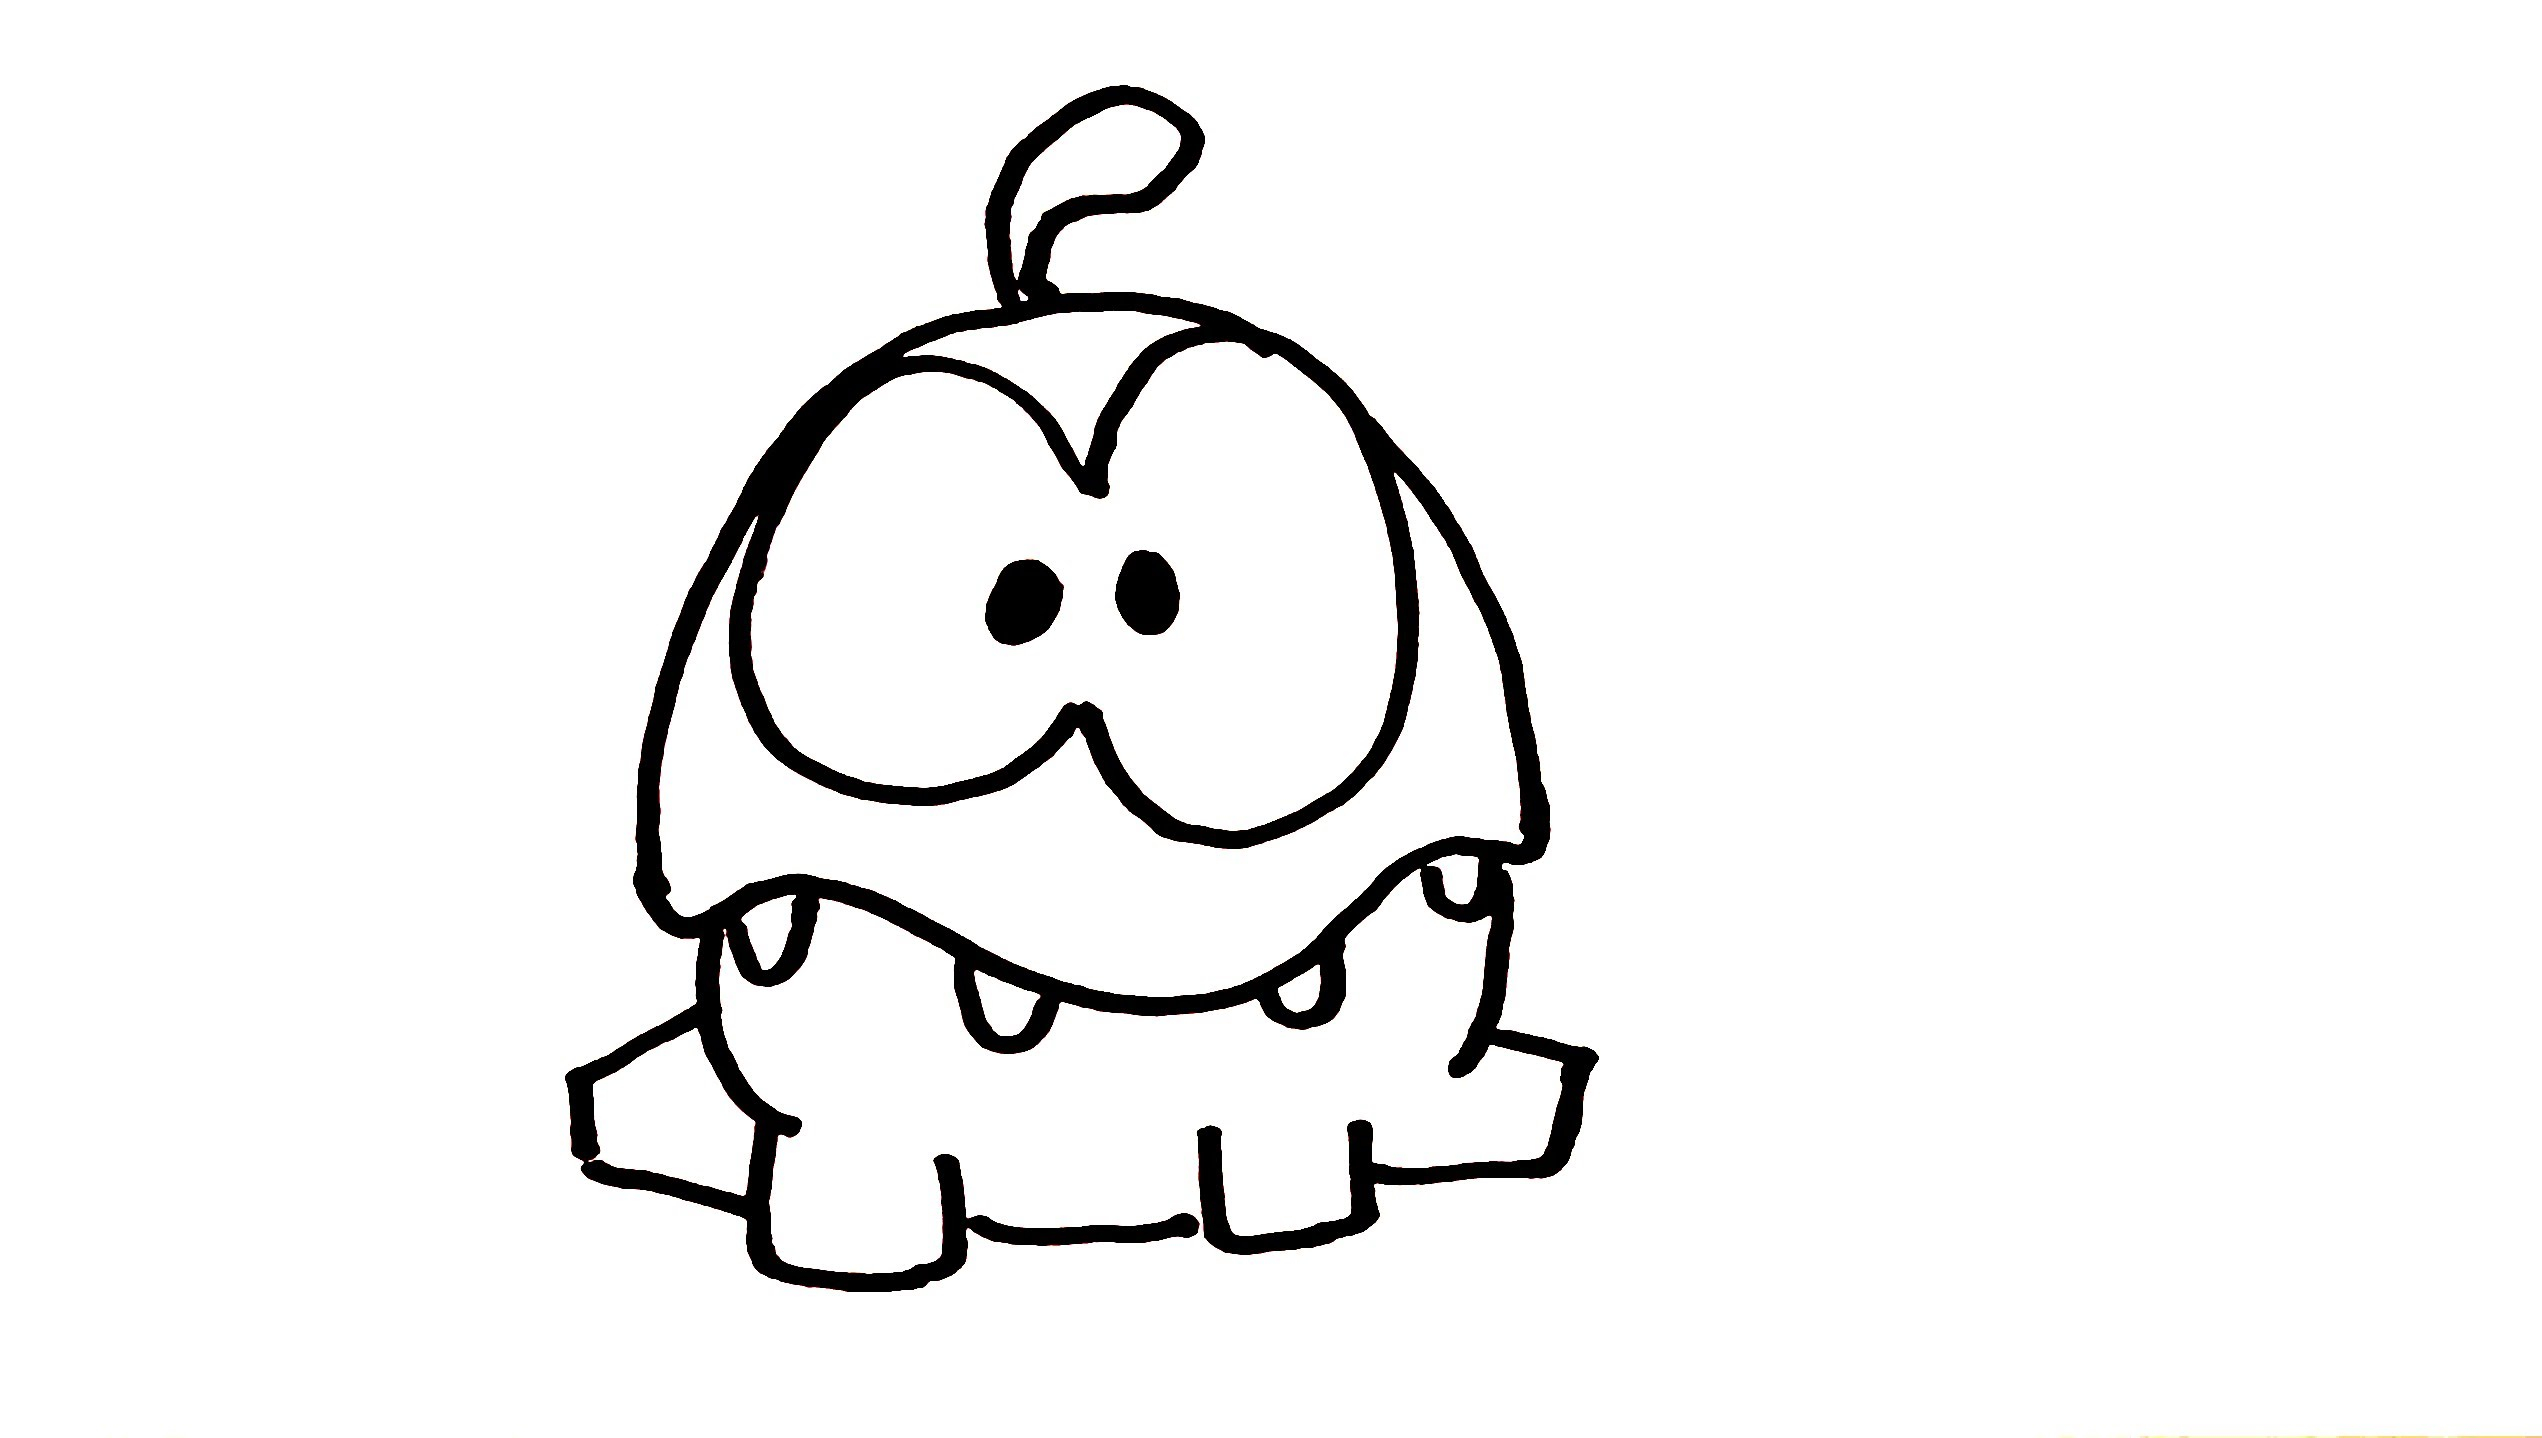 Cut the Rope Coloring Pages  Printable 2f - Free Download